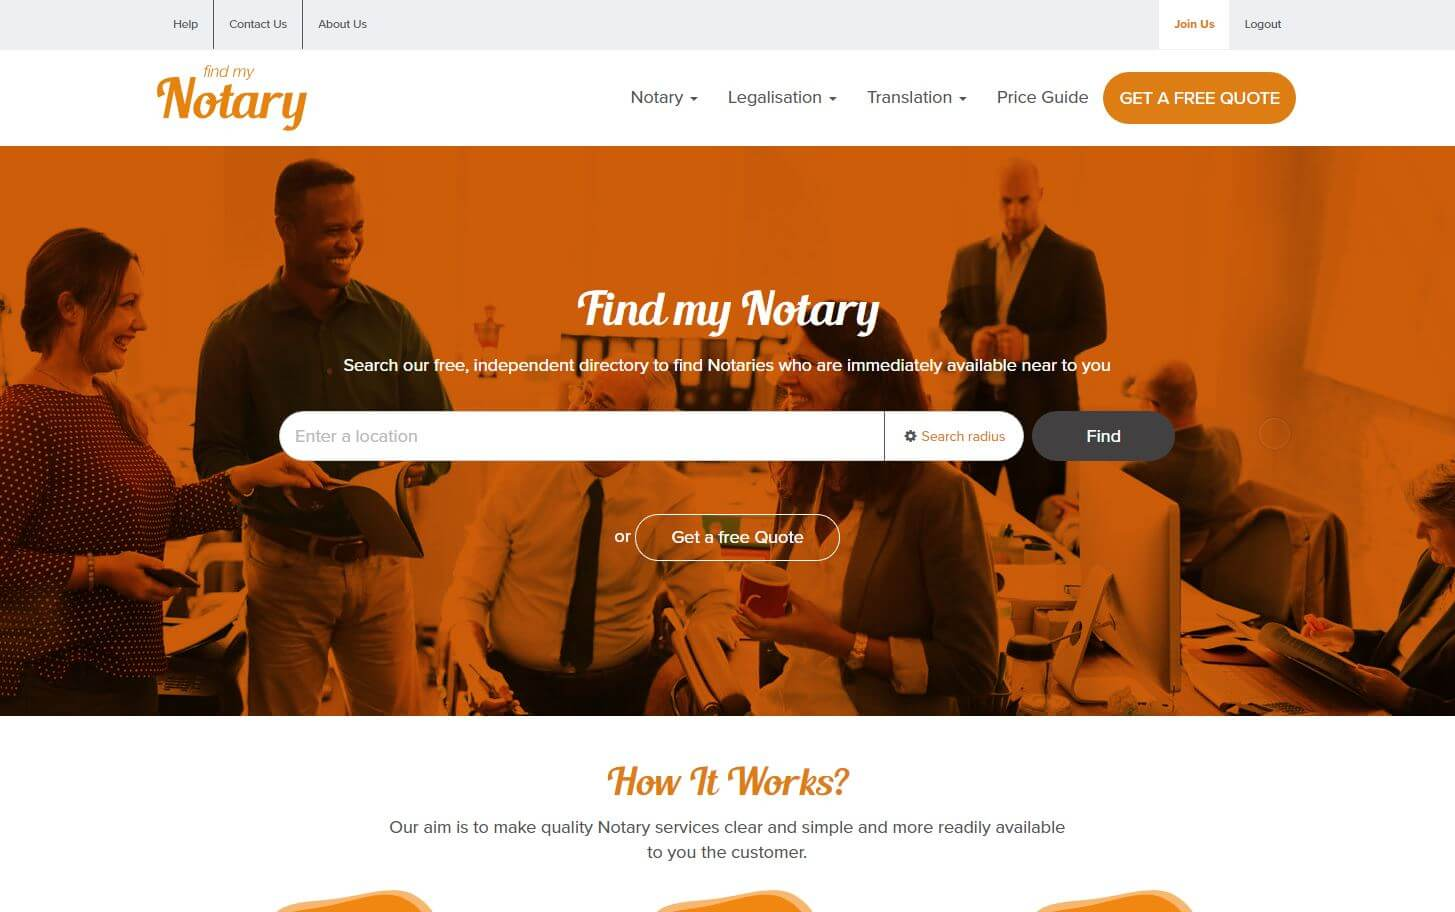 Find My Notary website home page